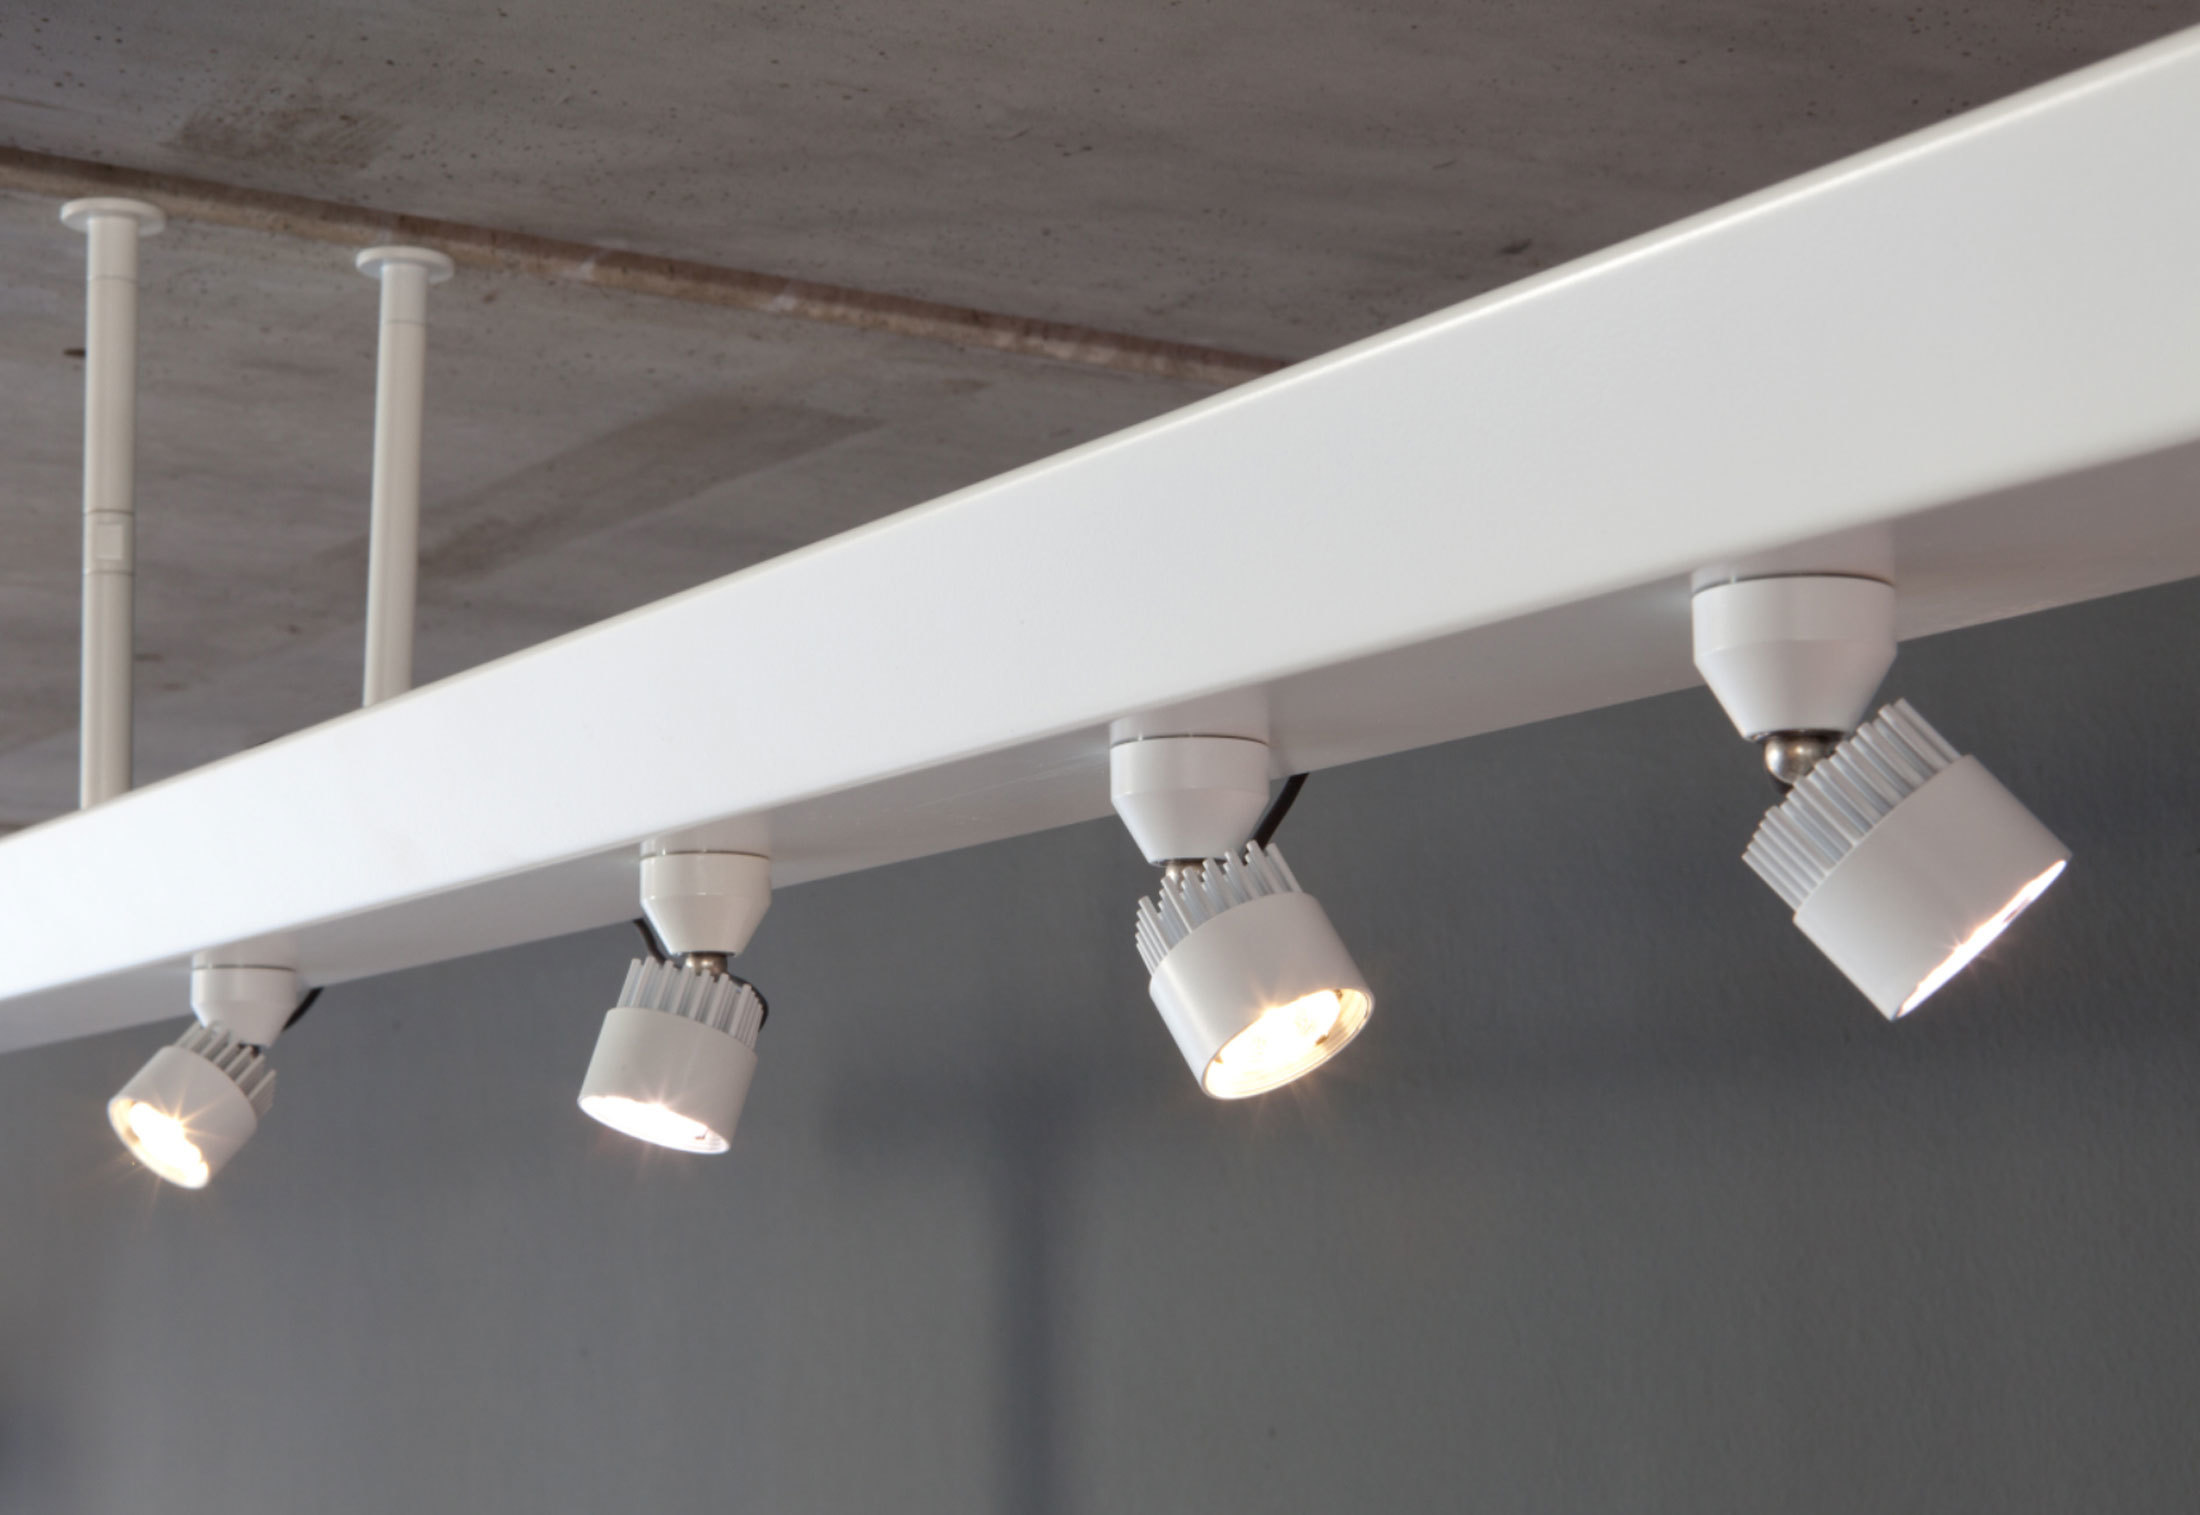 Led Lichtschiene Led-luc Light-track By Ado Lights | Stylepark